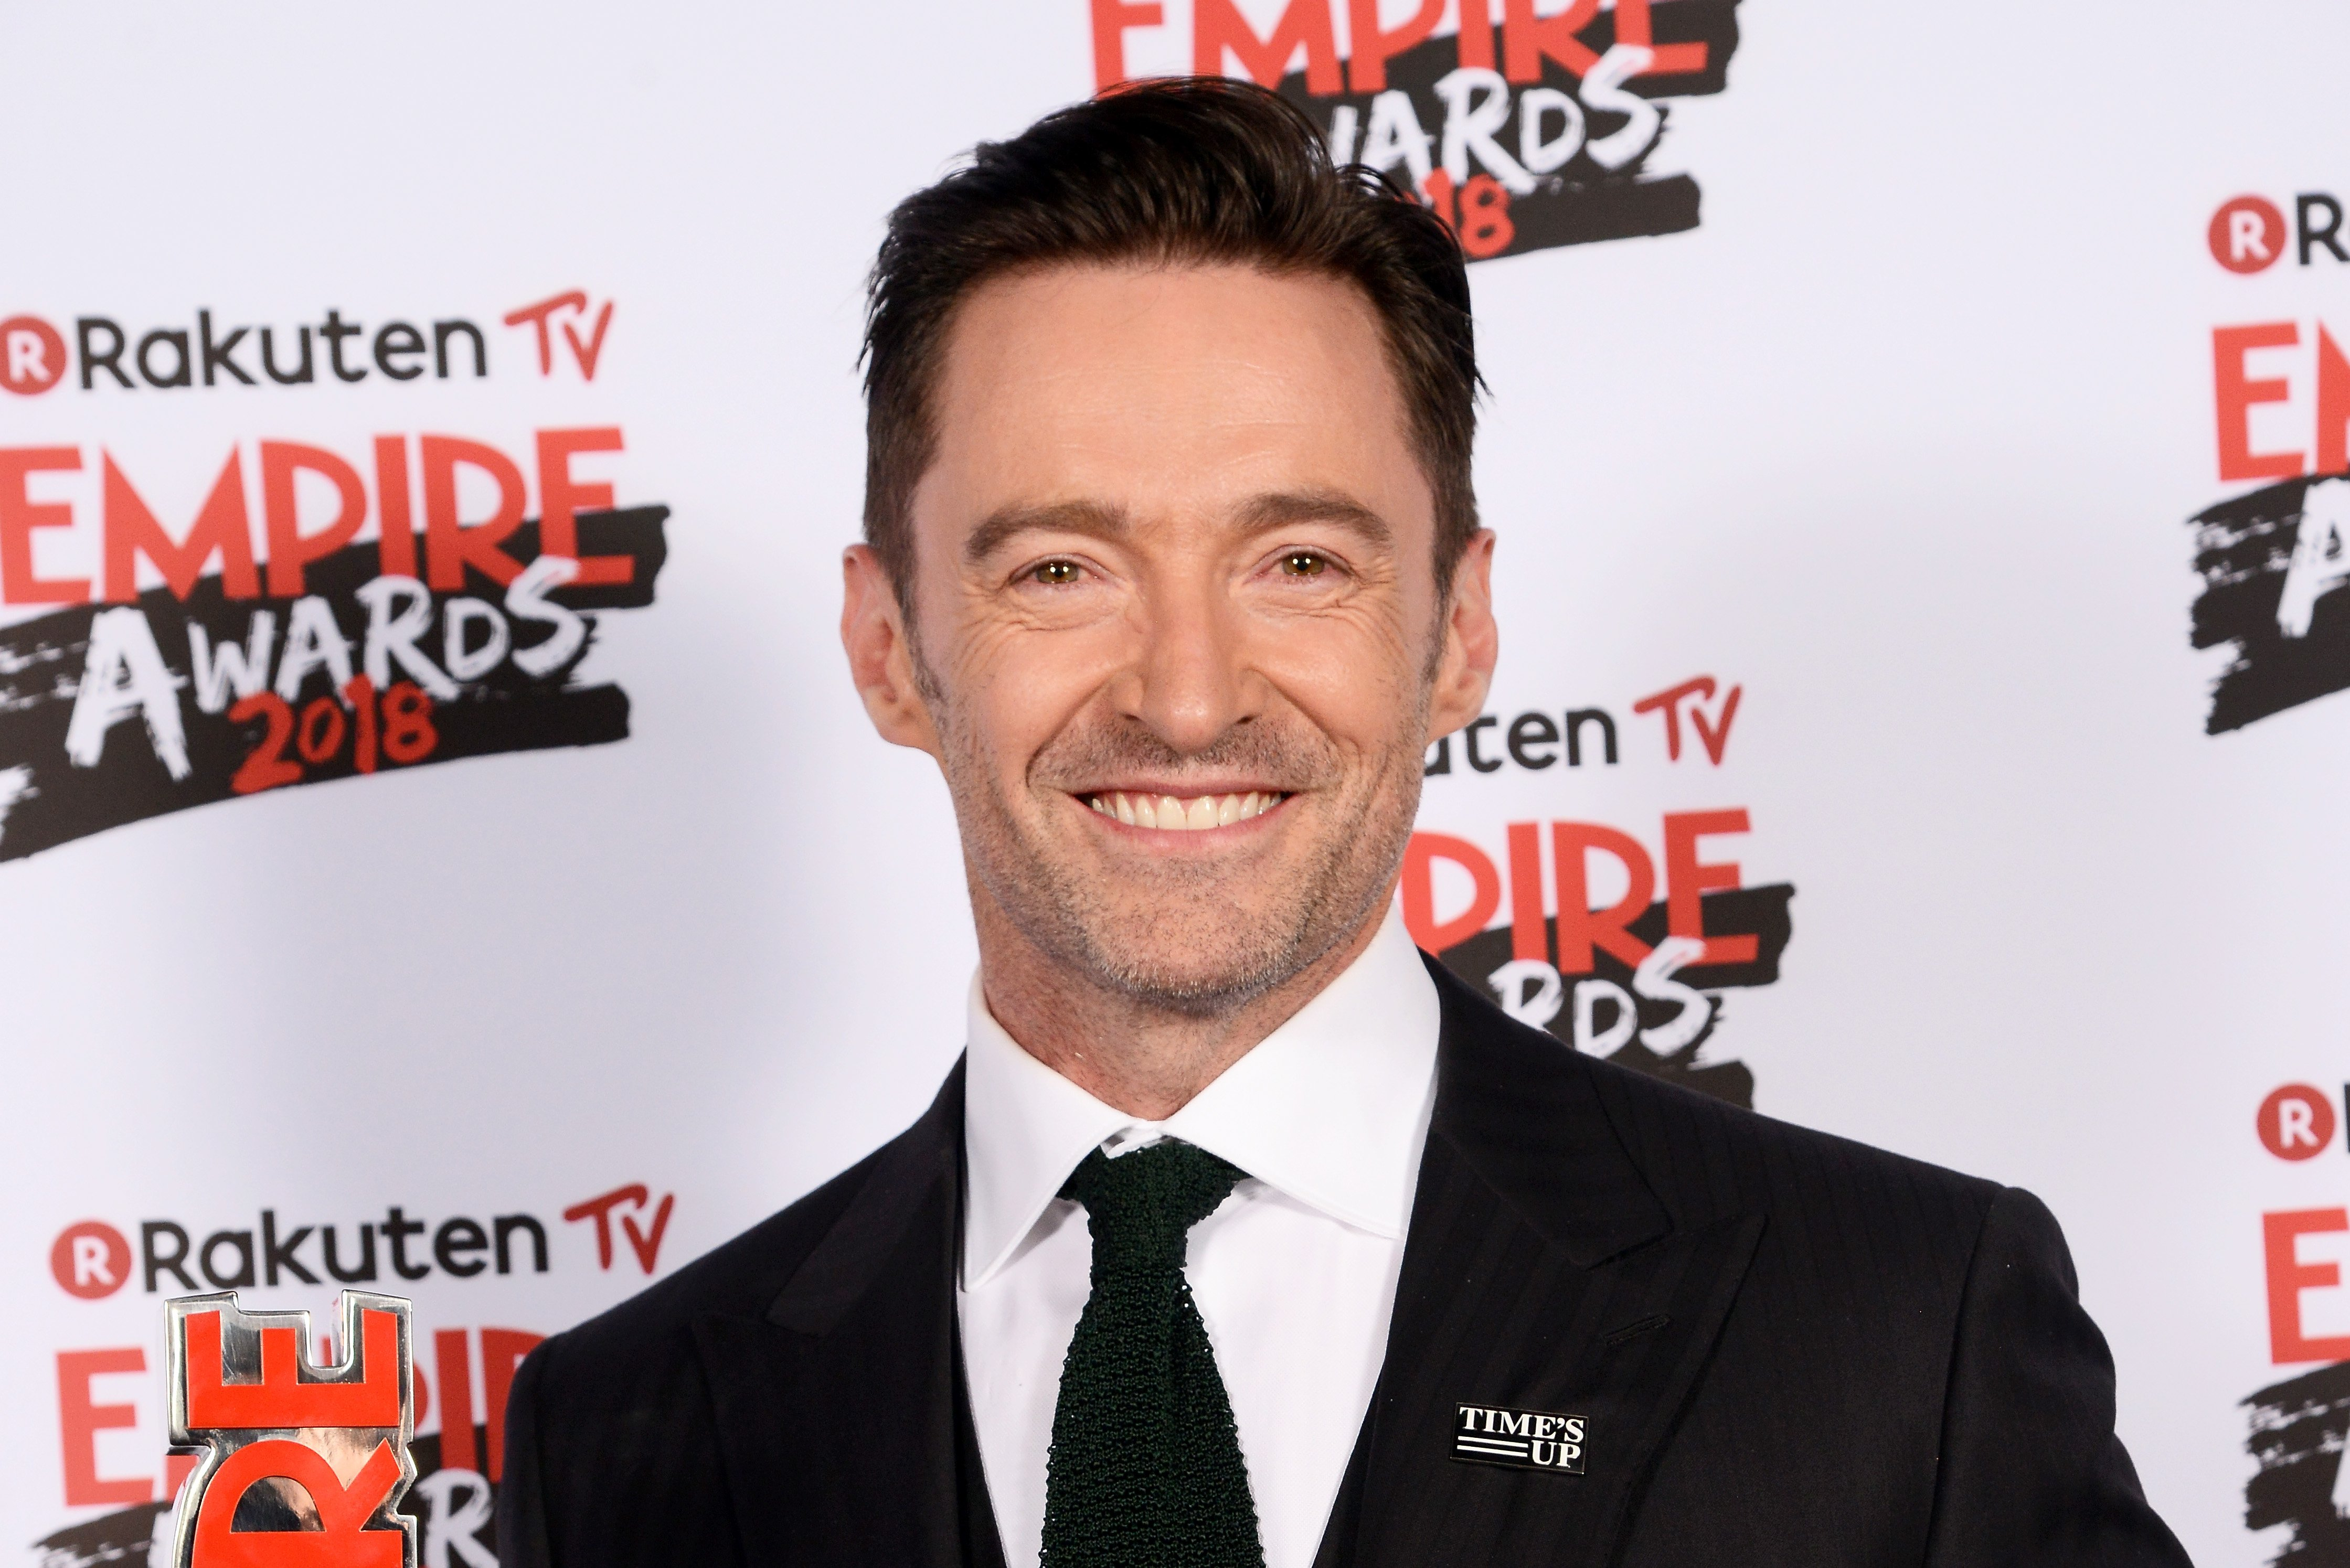 Hugh Jackman, winner of the Best Actor award, poses in the winners room at the Rakuten TV EMPIRE Awards 2018 at The Roundhouse on March 18, 2018,0 in London, England. | Source: Getty Images.